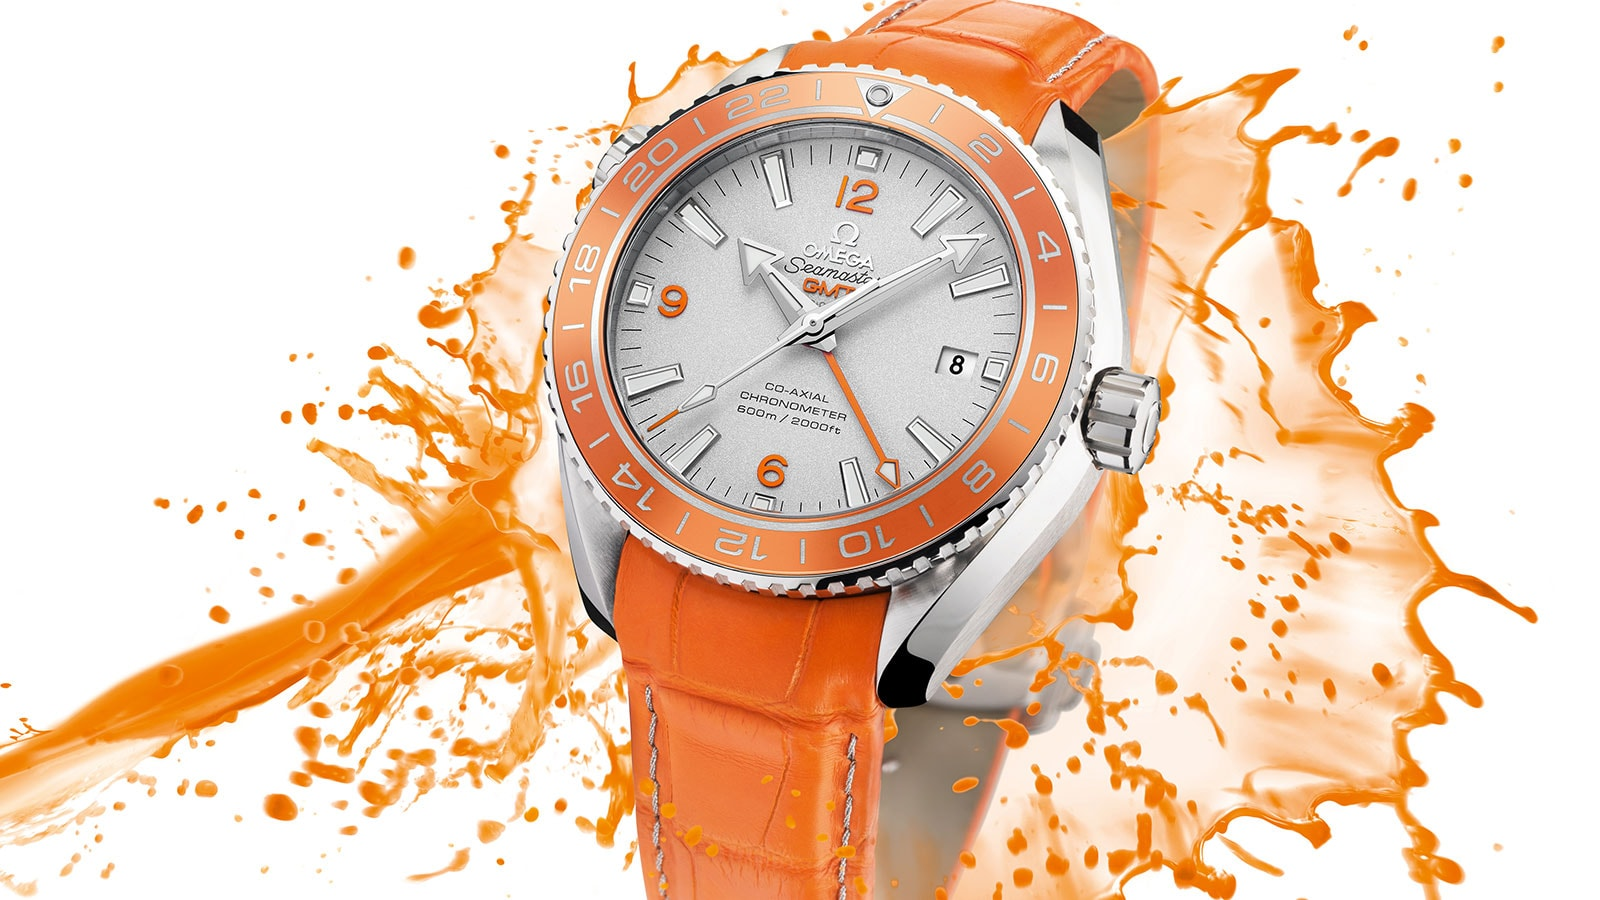 Seamaster Planet Ocean 600M Planet Ocean 600M Omega Co‑axial GMT 43.5mm Watch - 232.93.44.22.99.001